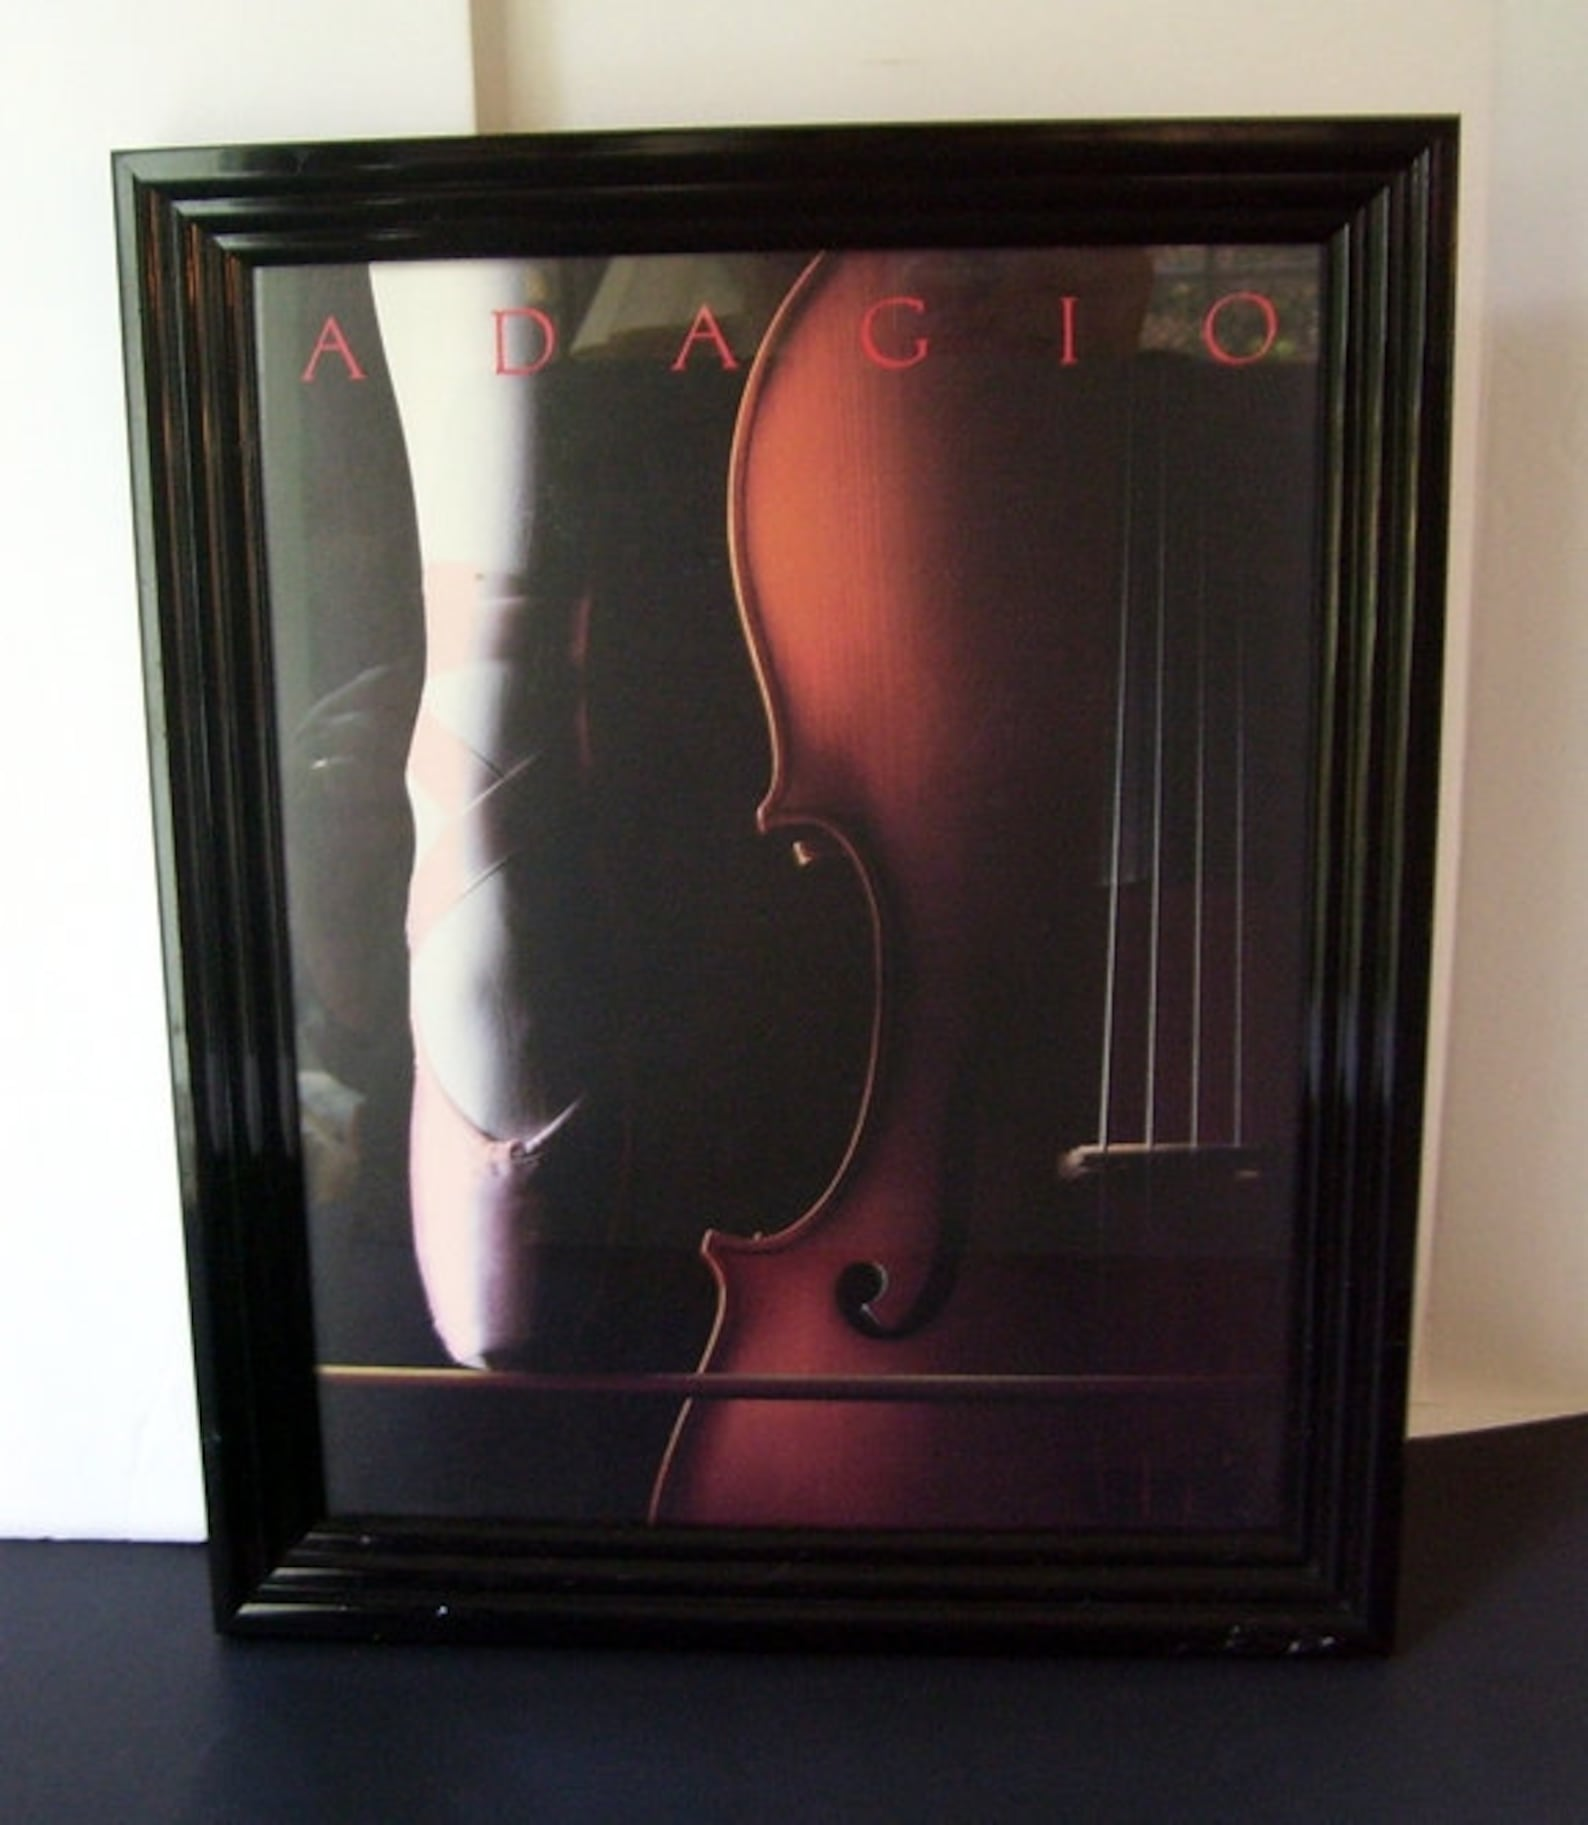 adagio ballerina with violin framed photo print, pink ballet shoes, framed wall decor, musical theme